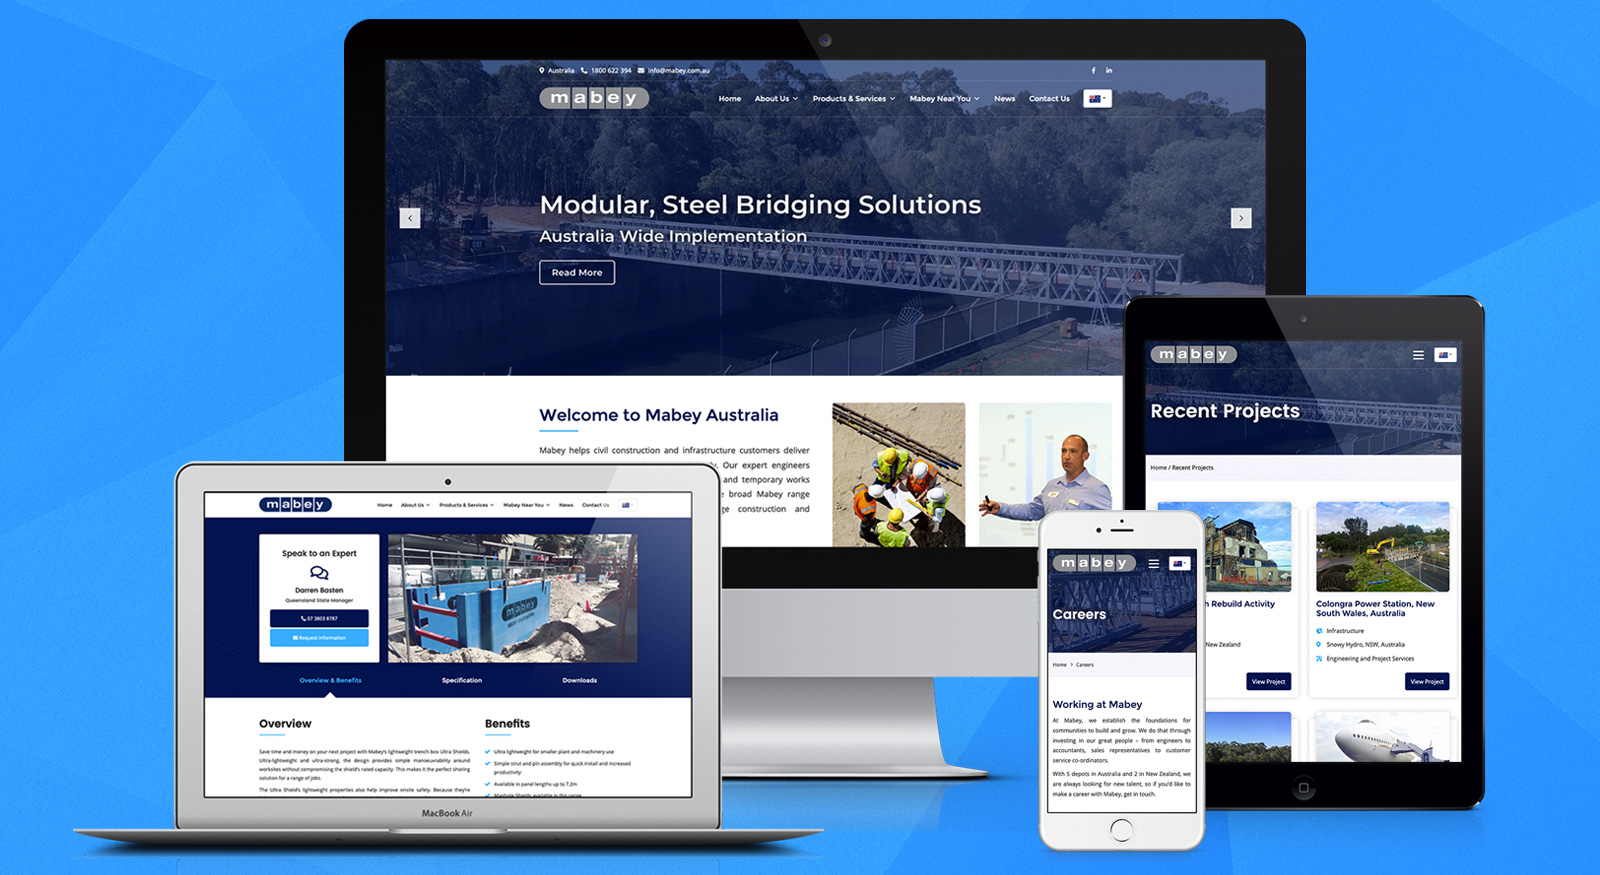 mabey-australia-website-design-onepoint-solutions-brisbane-qld-2020